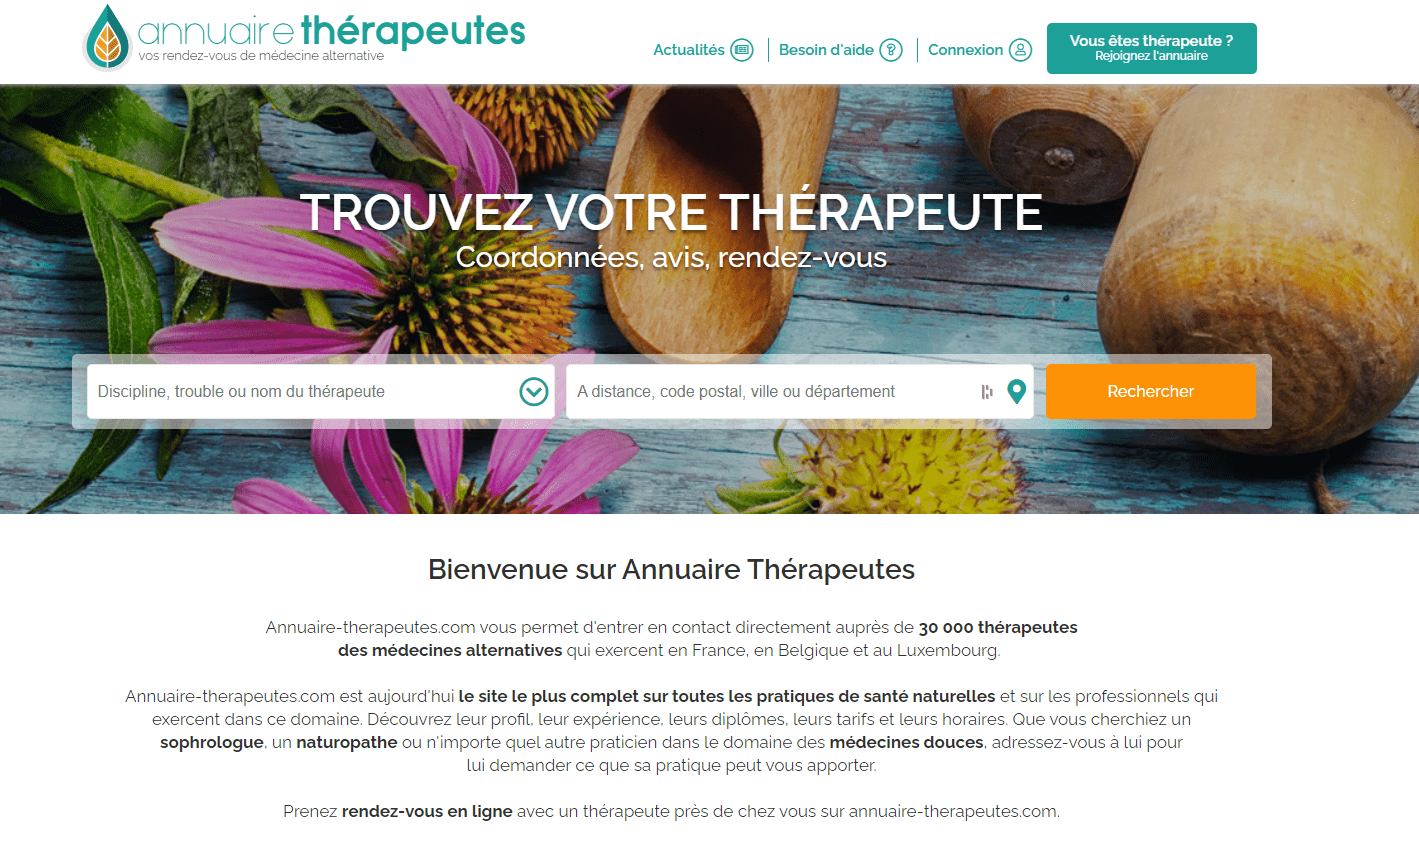 Annuaire Therapeute page d accueil